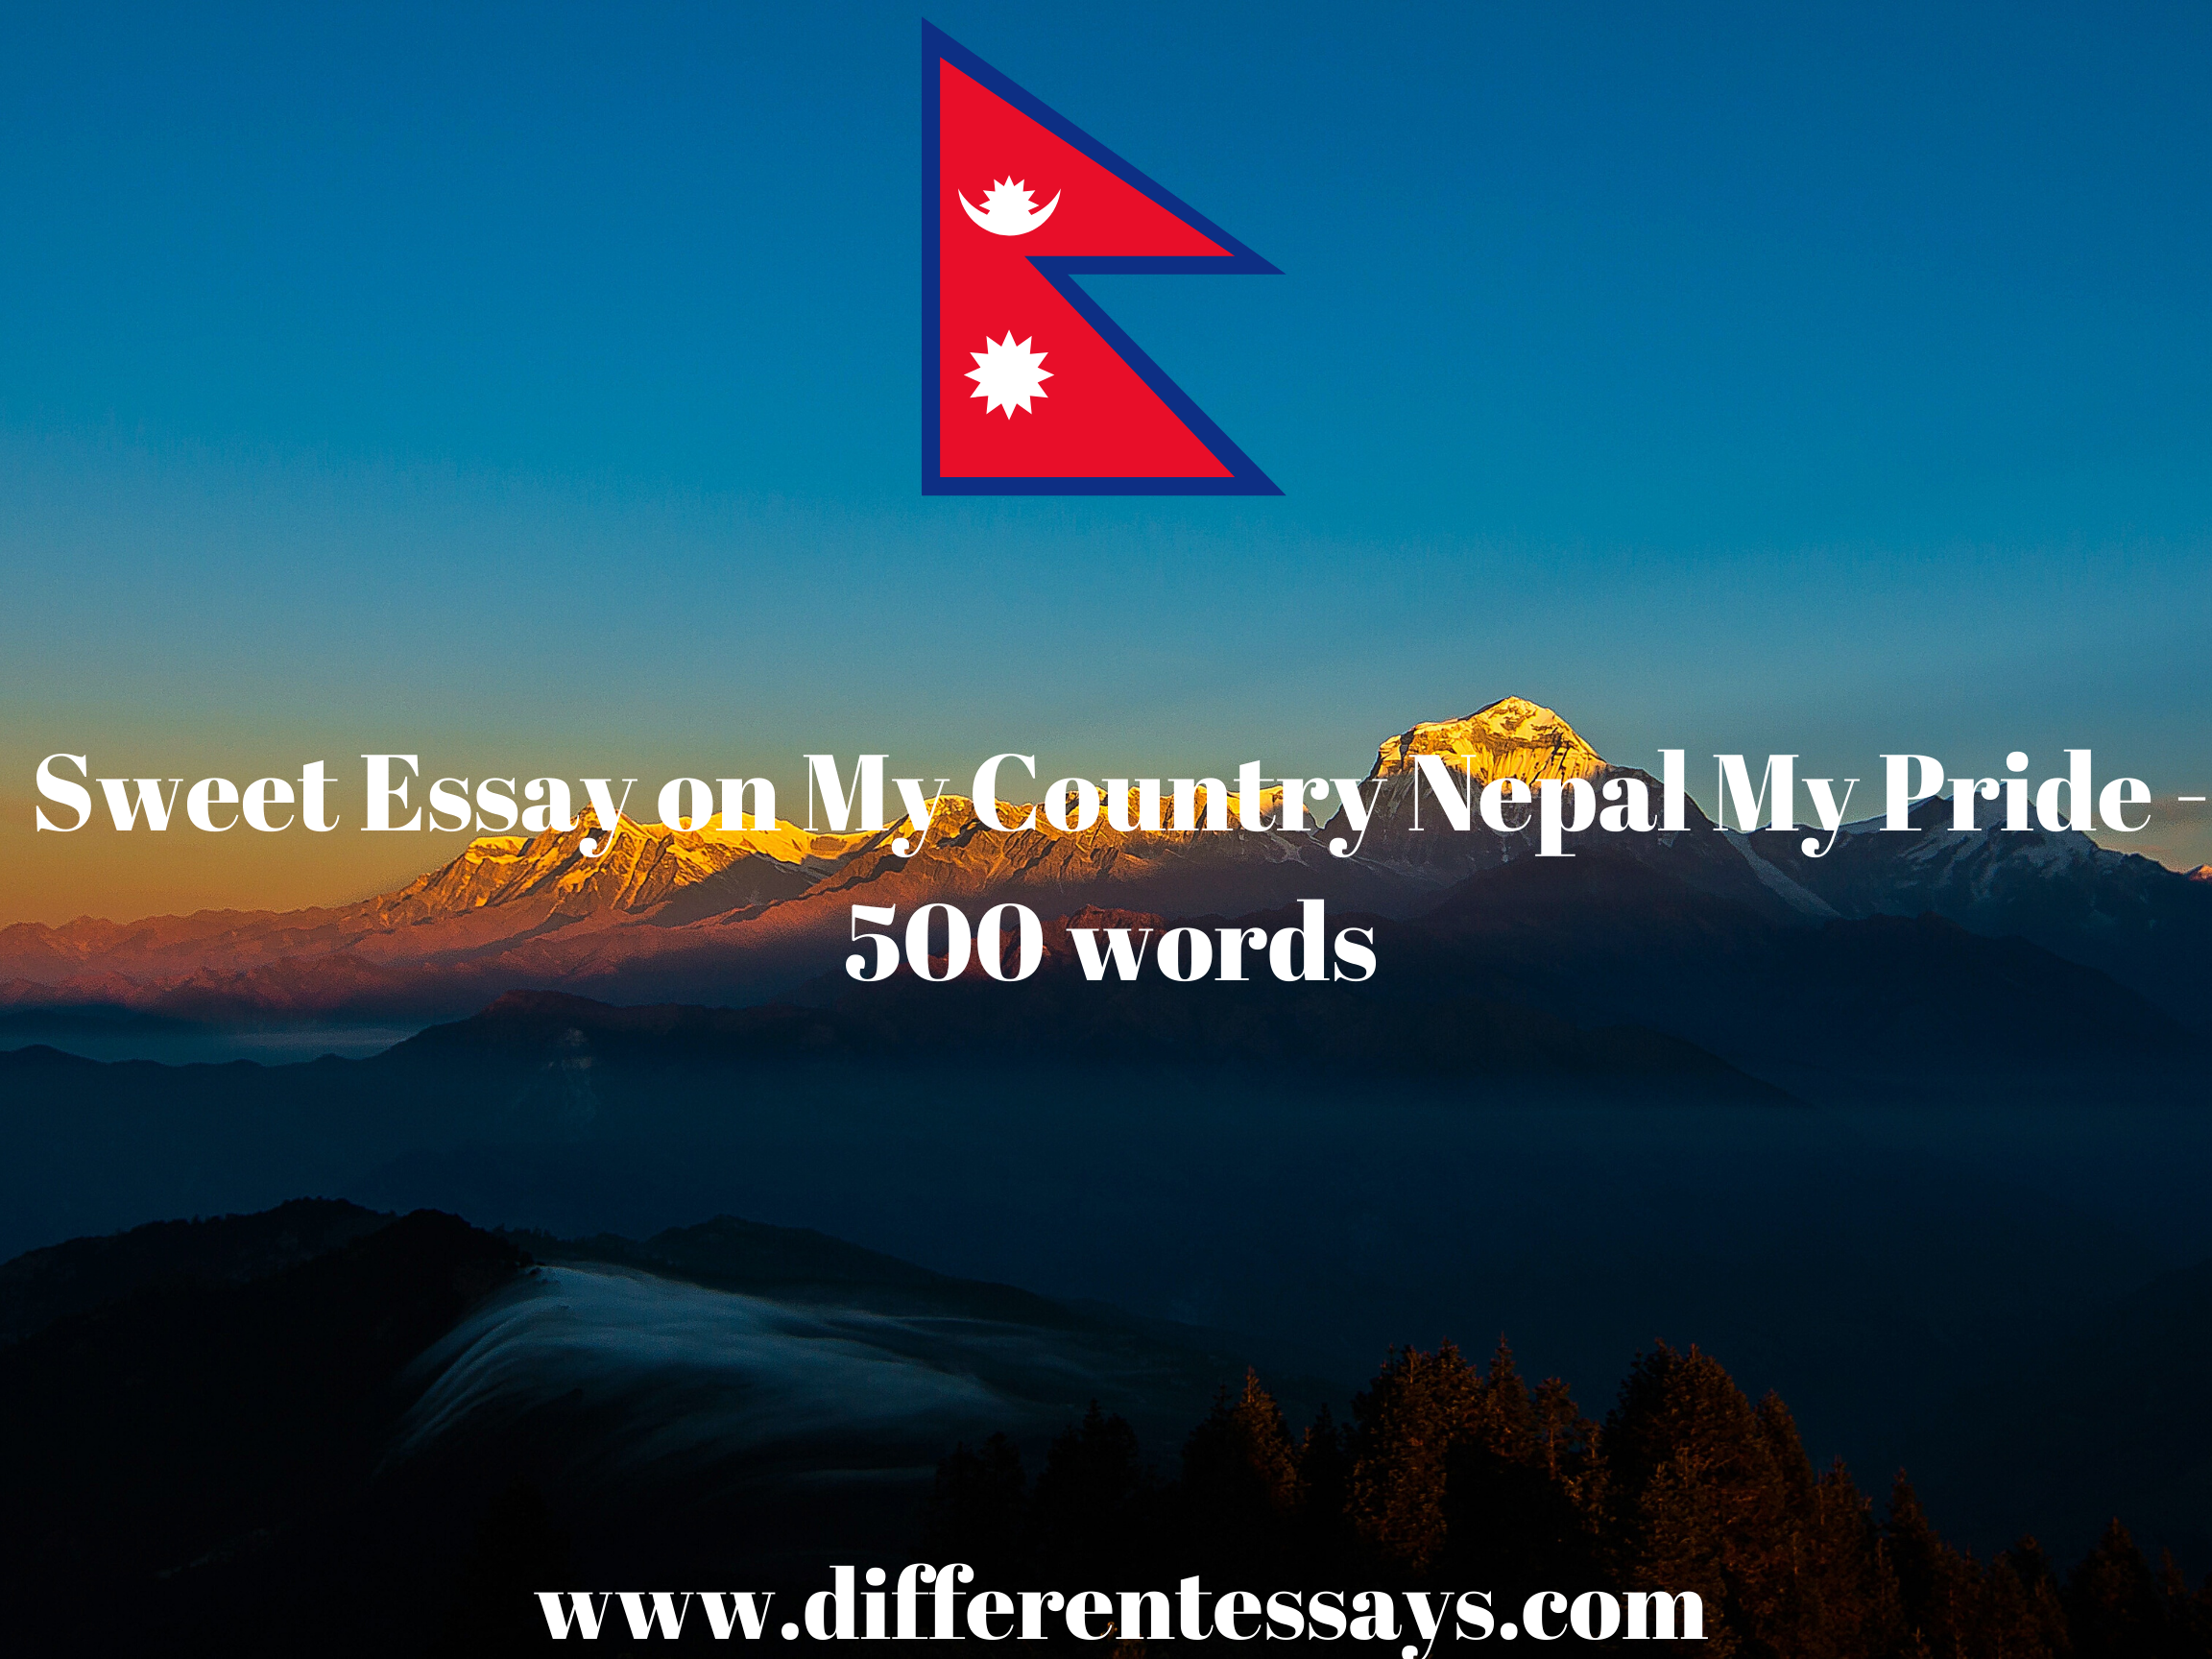 Sweet Essay on My Country Nepal My Land - 500 words